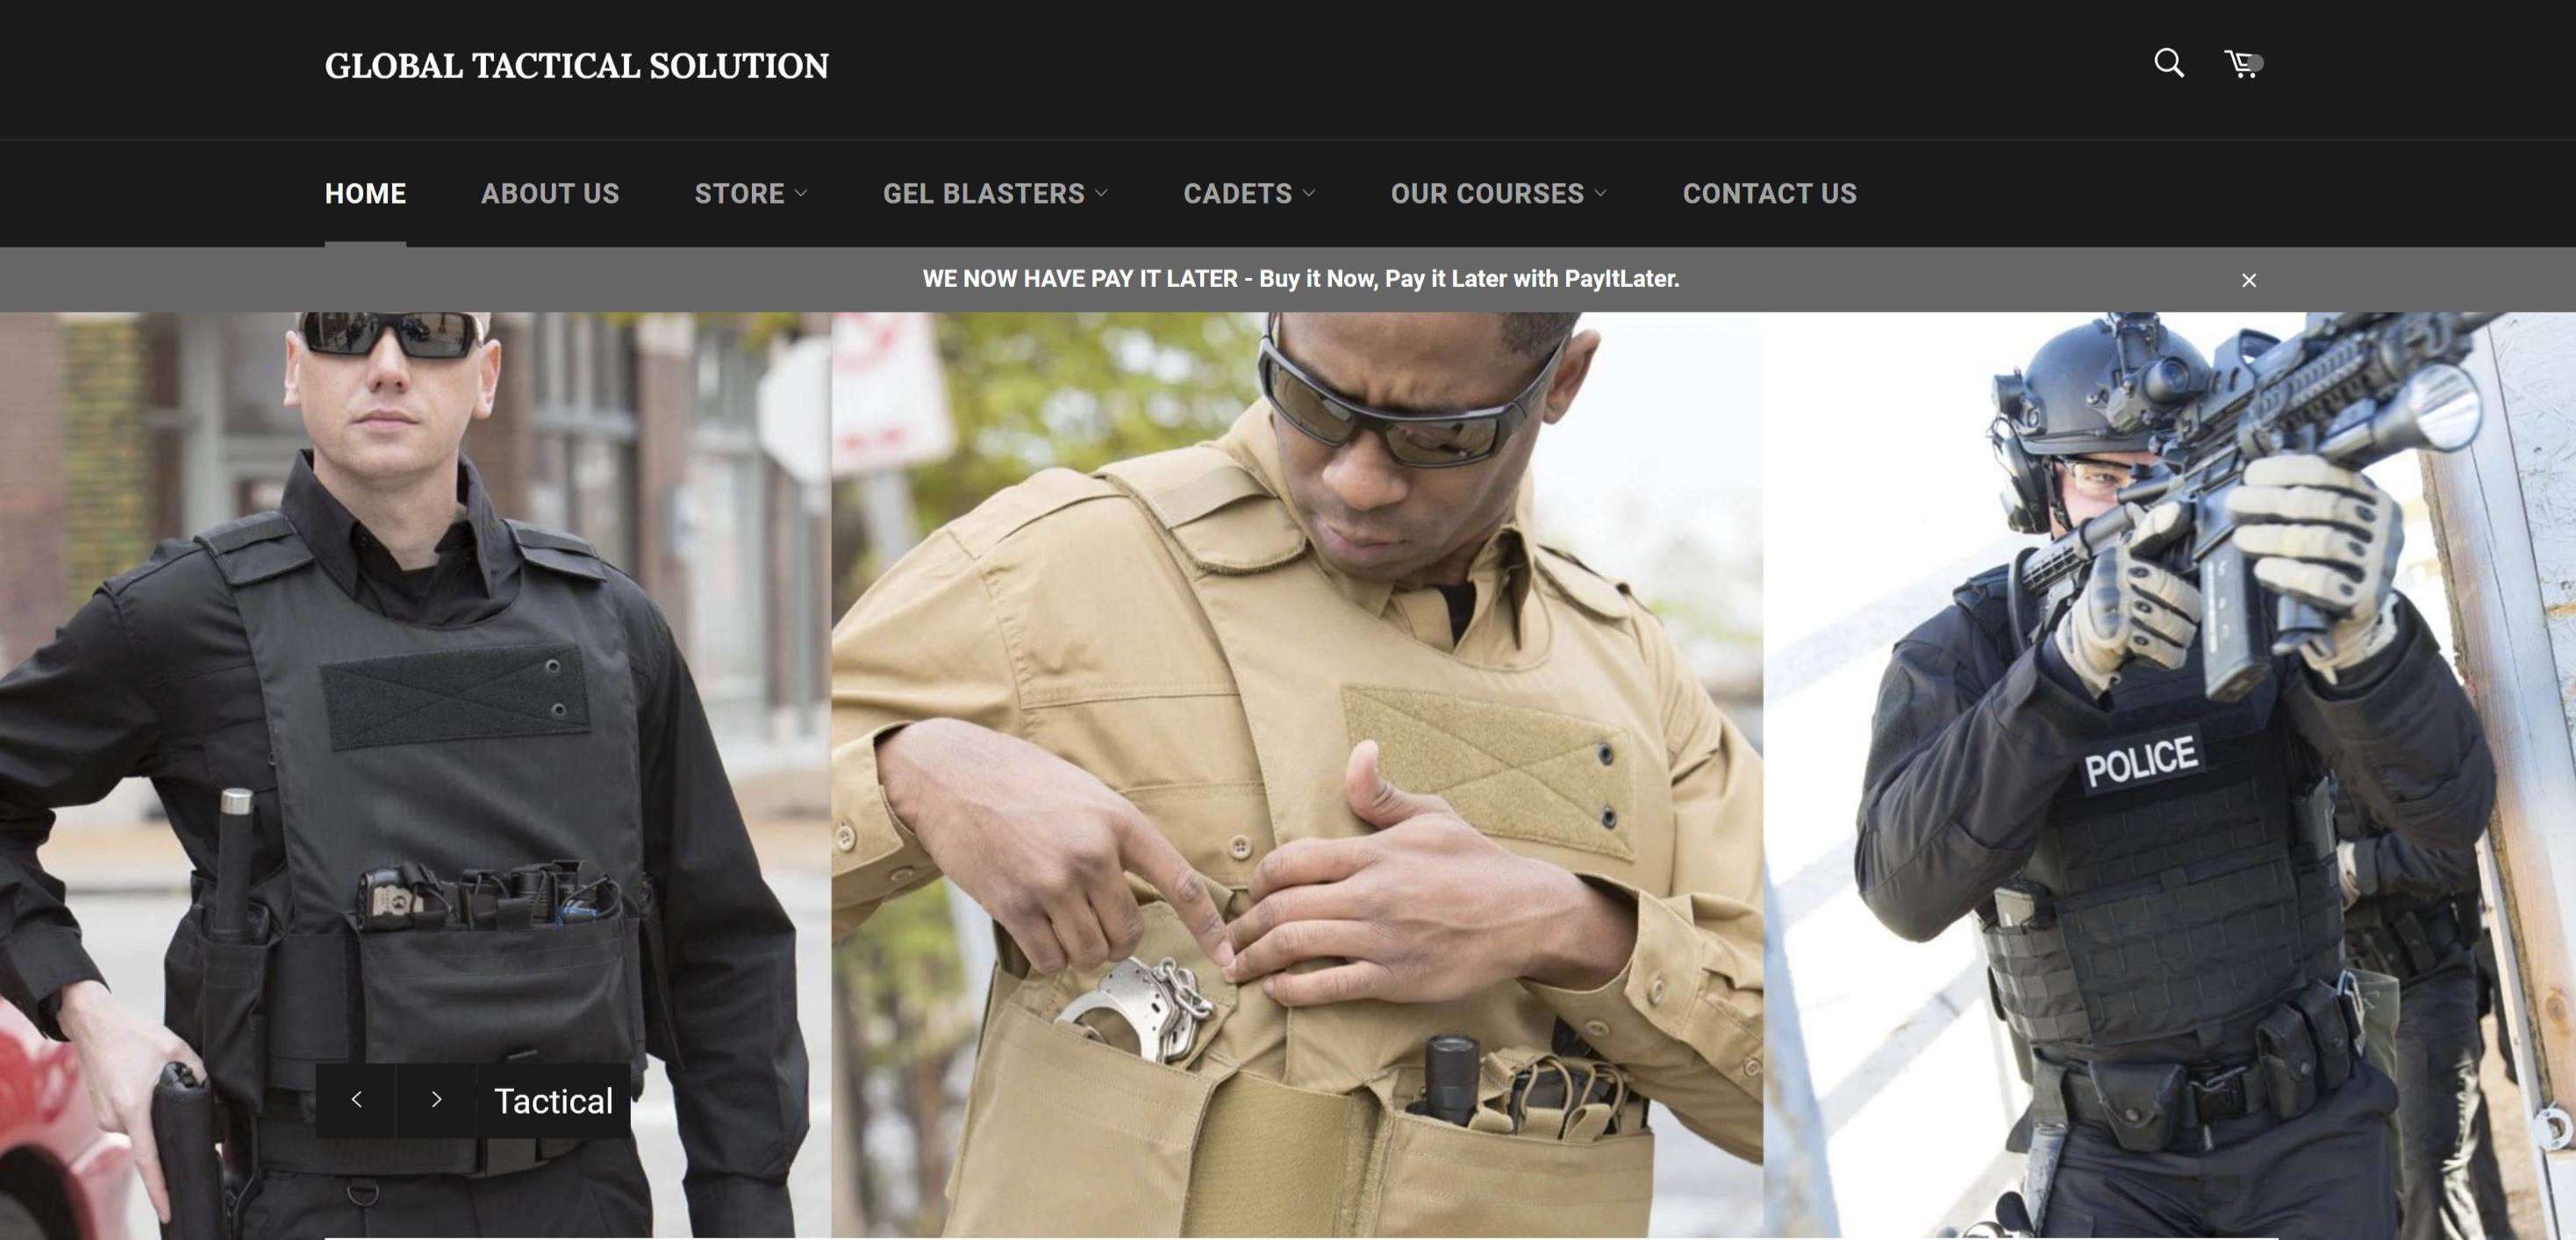 Global Tactical Solutions